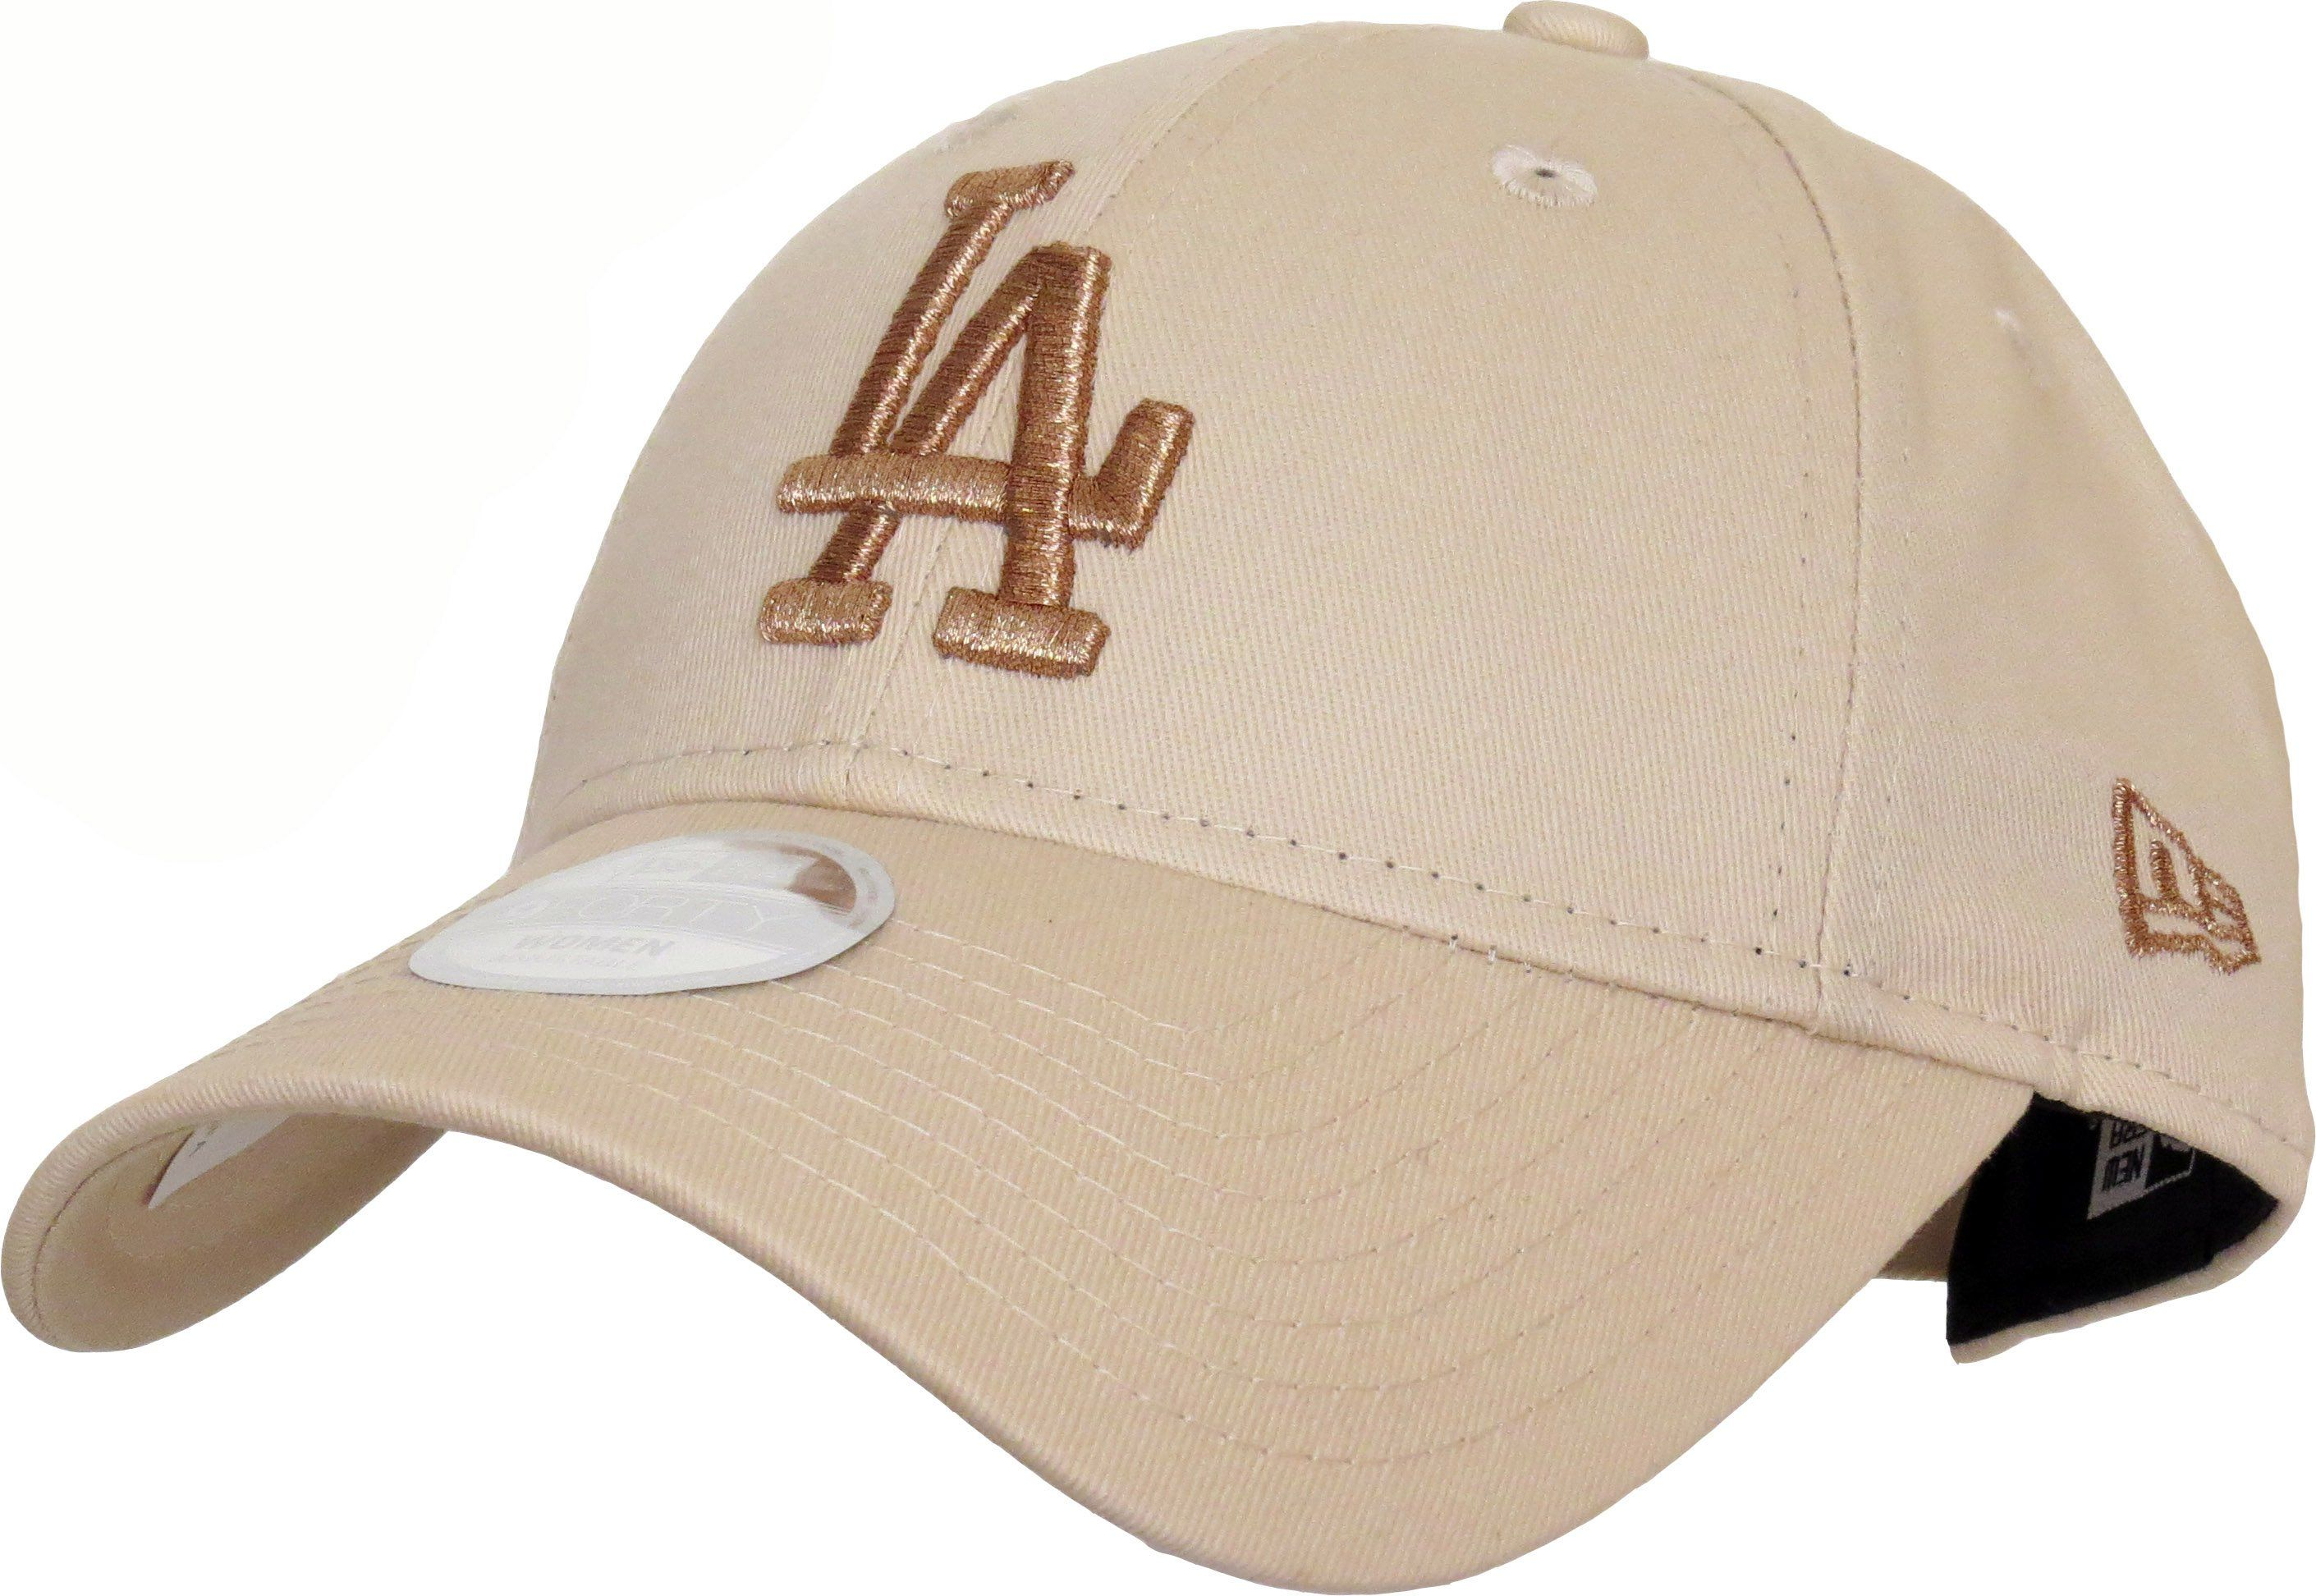 996614de New Era 9Forty Womens LA Dodgers Baseball Cap. Stone coloured, with the  Gold LA Dodgers front logo, and the New Era side logo. Adjustable rear  slide strap.